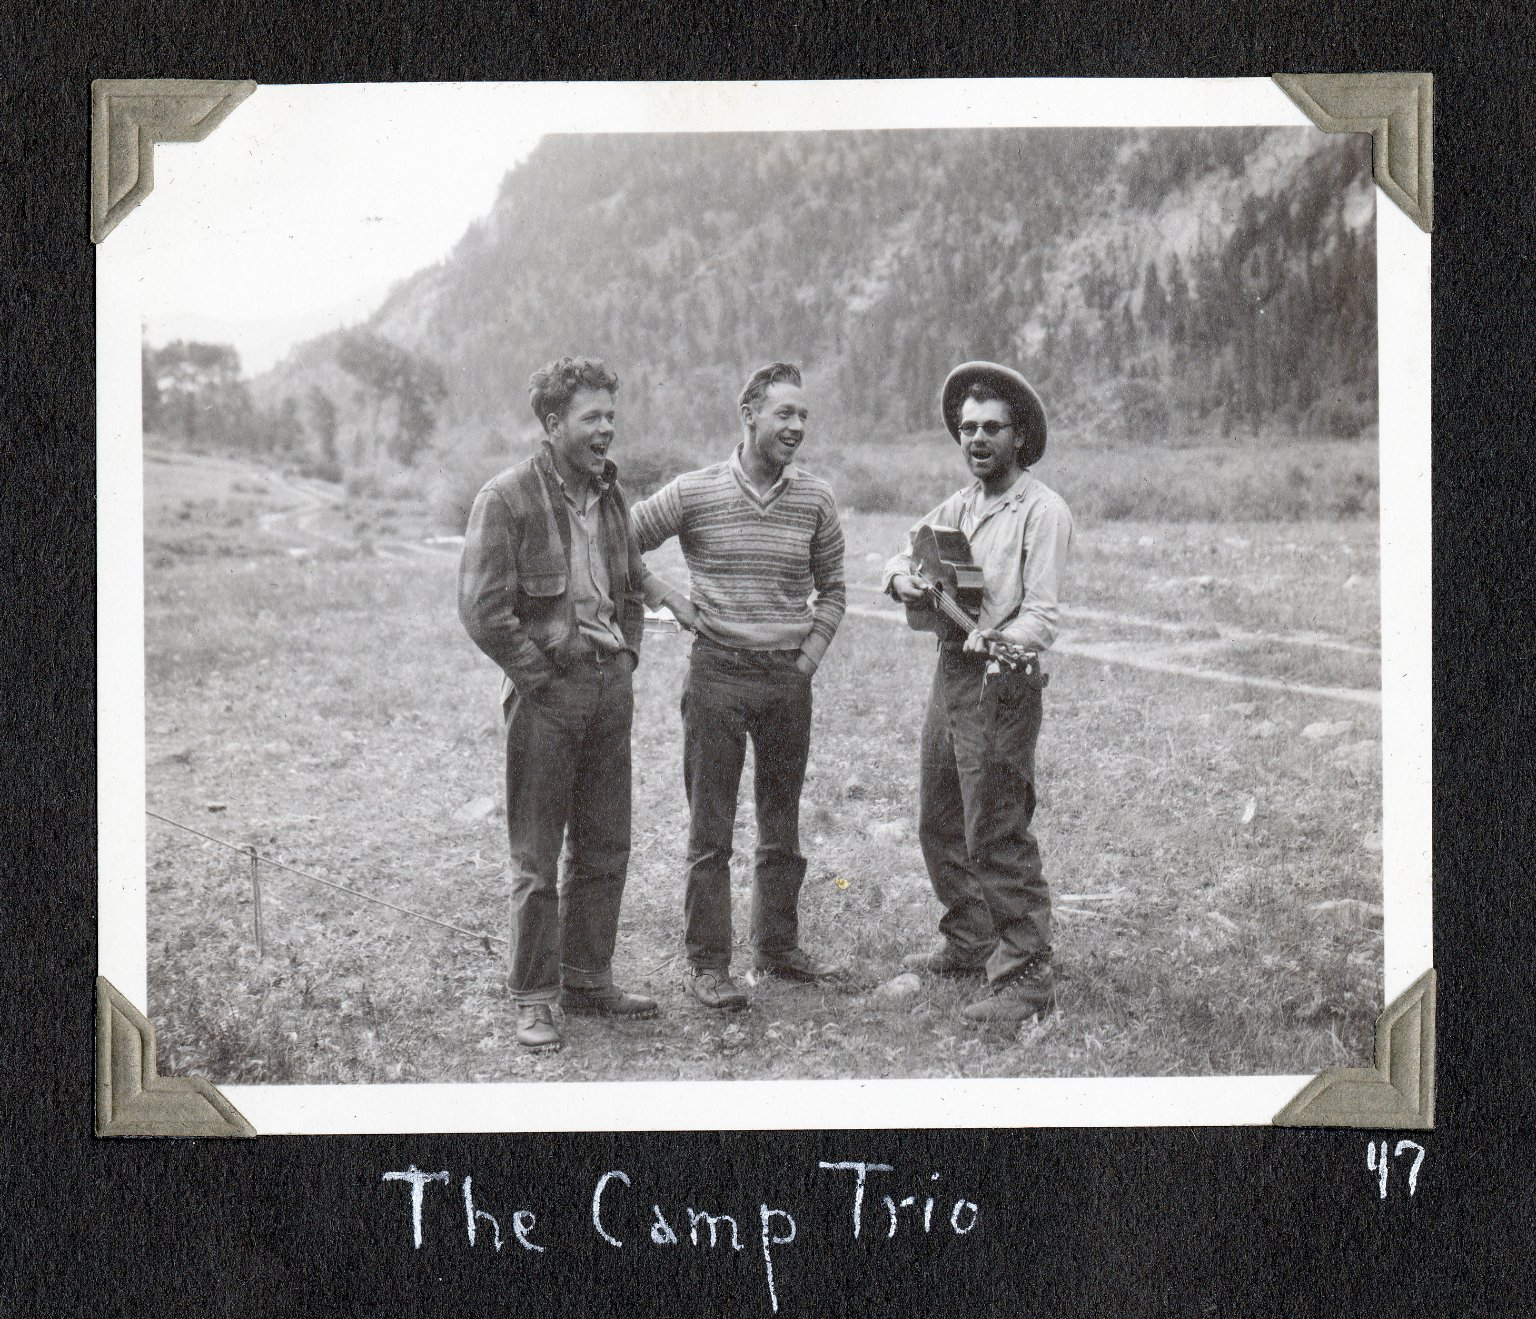 The camp trio: David Lavender, Harris Haugh, Henry Buchtel